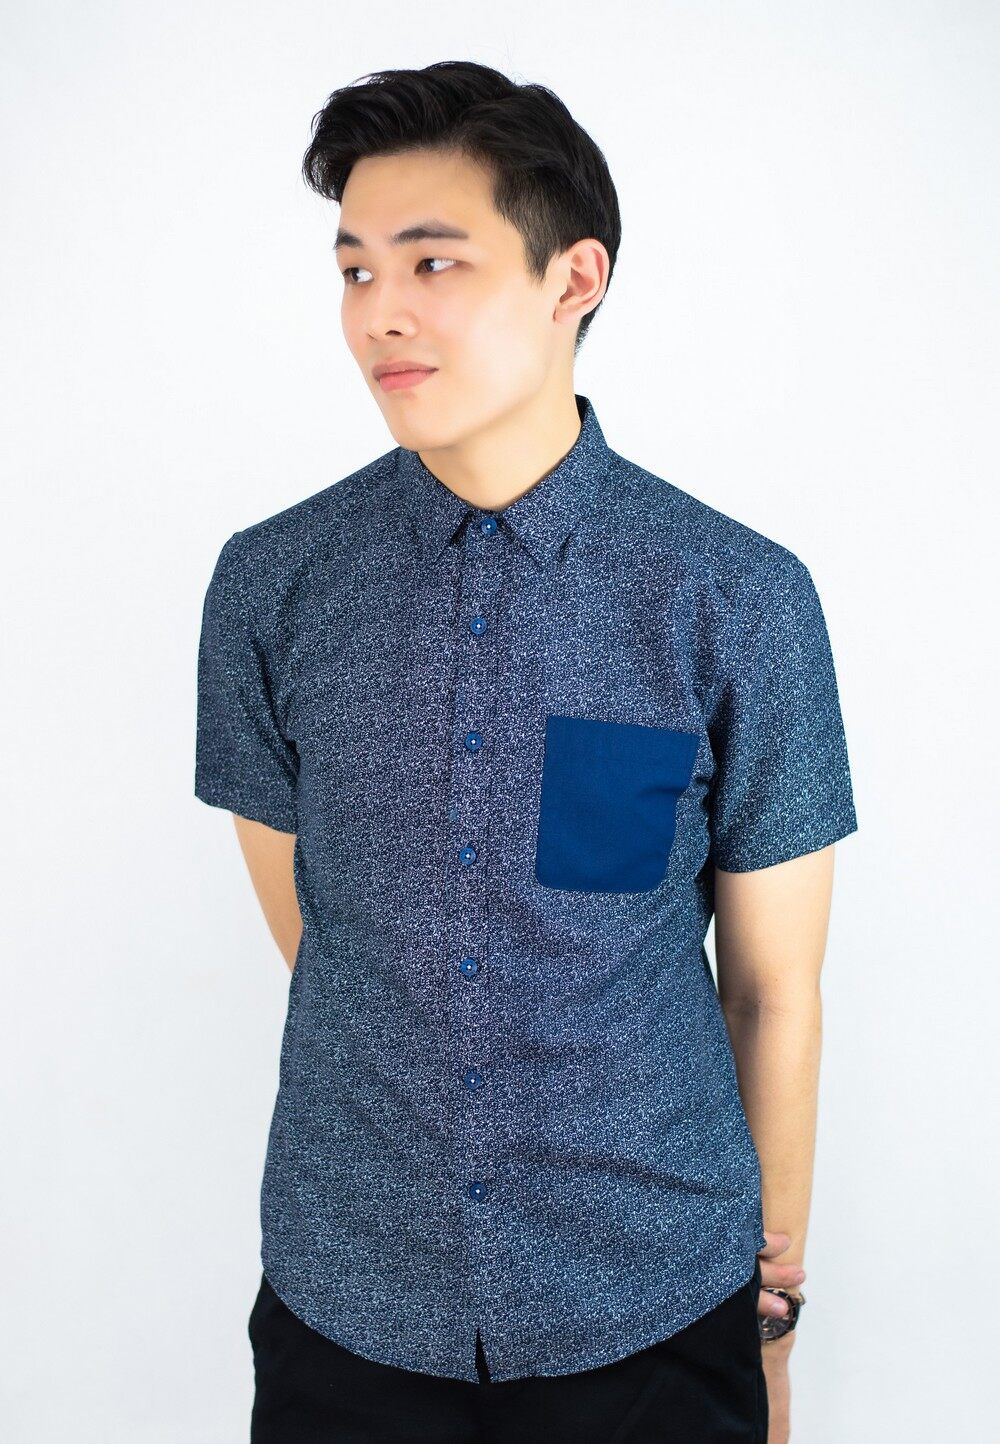 Smart Look Printing Shirt with Contrast Pocket